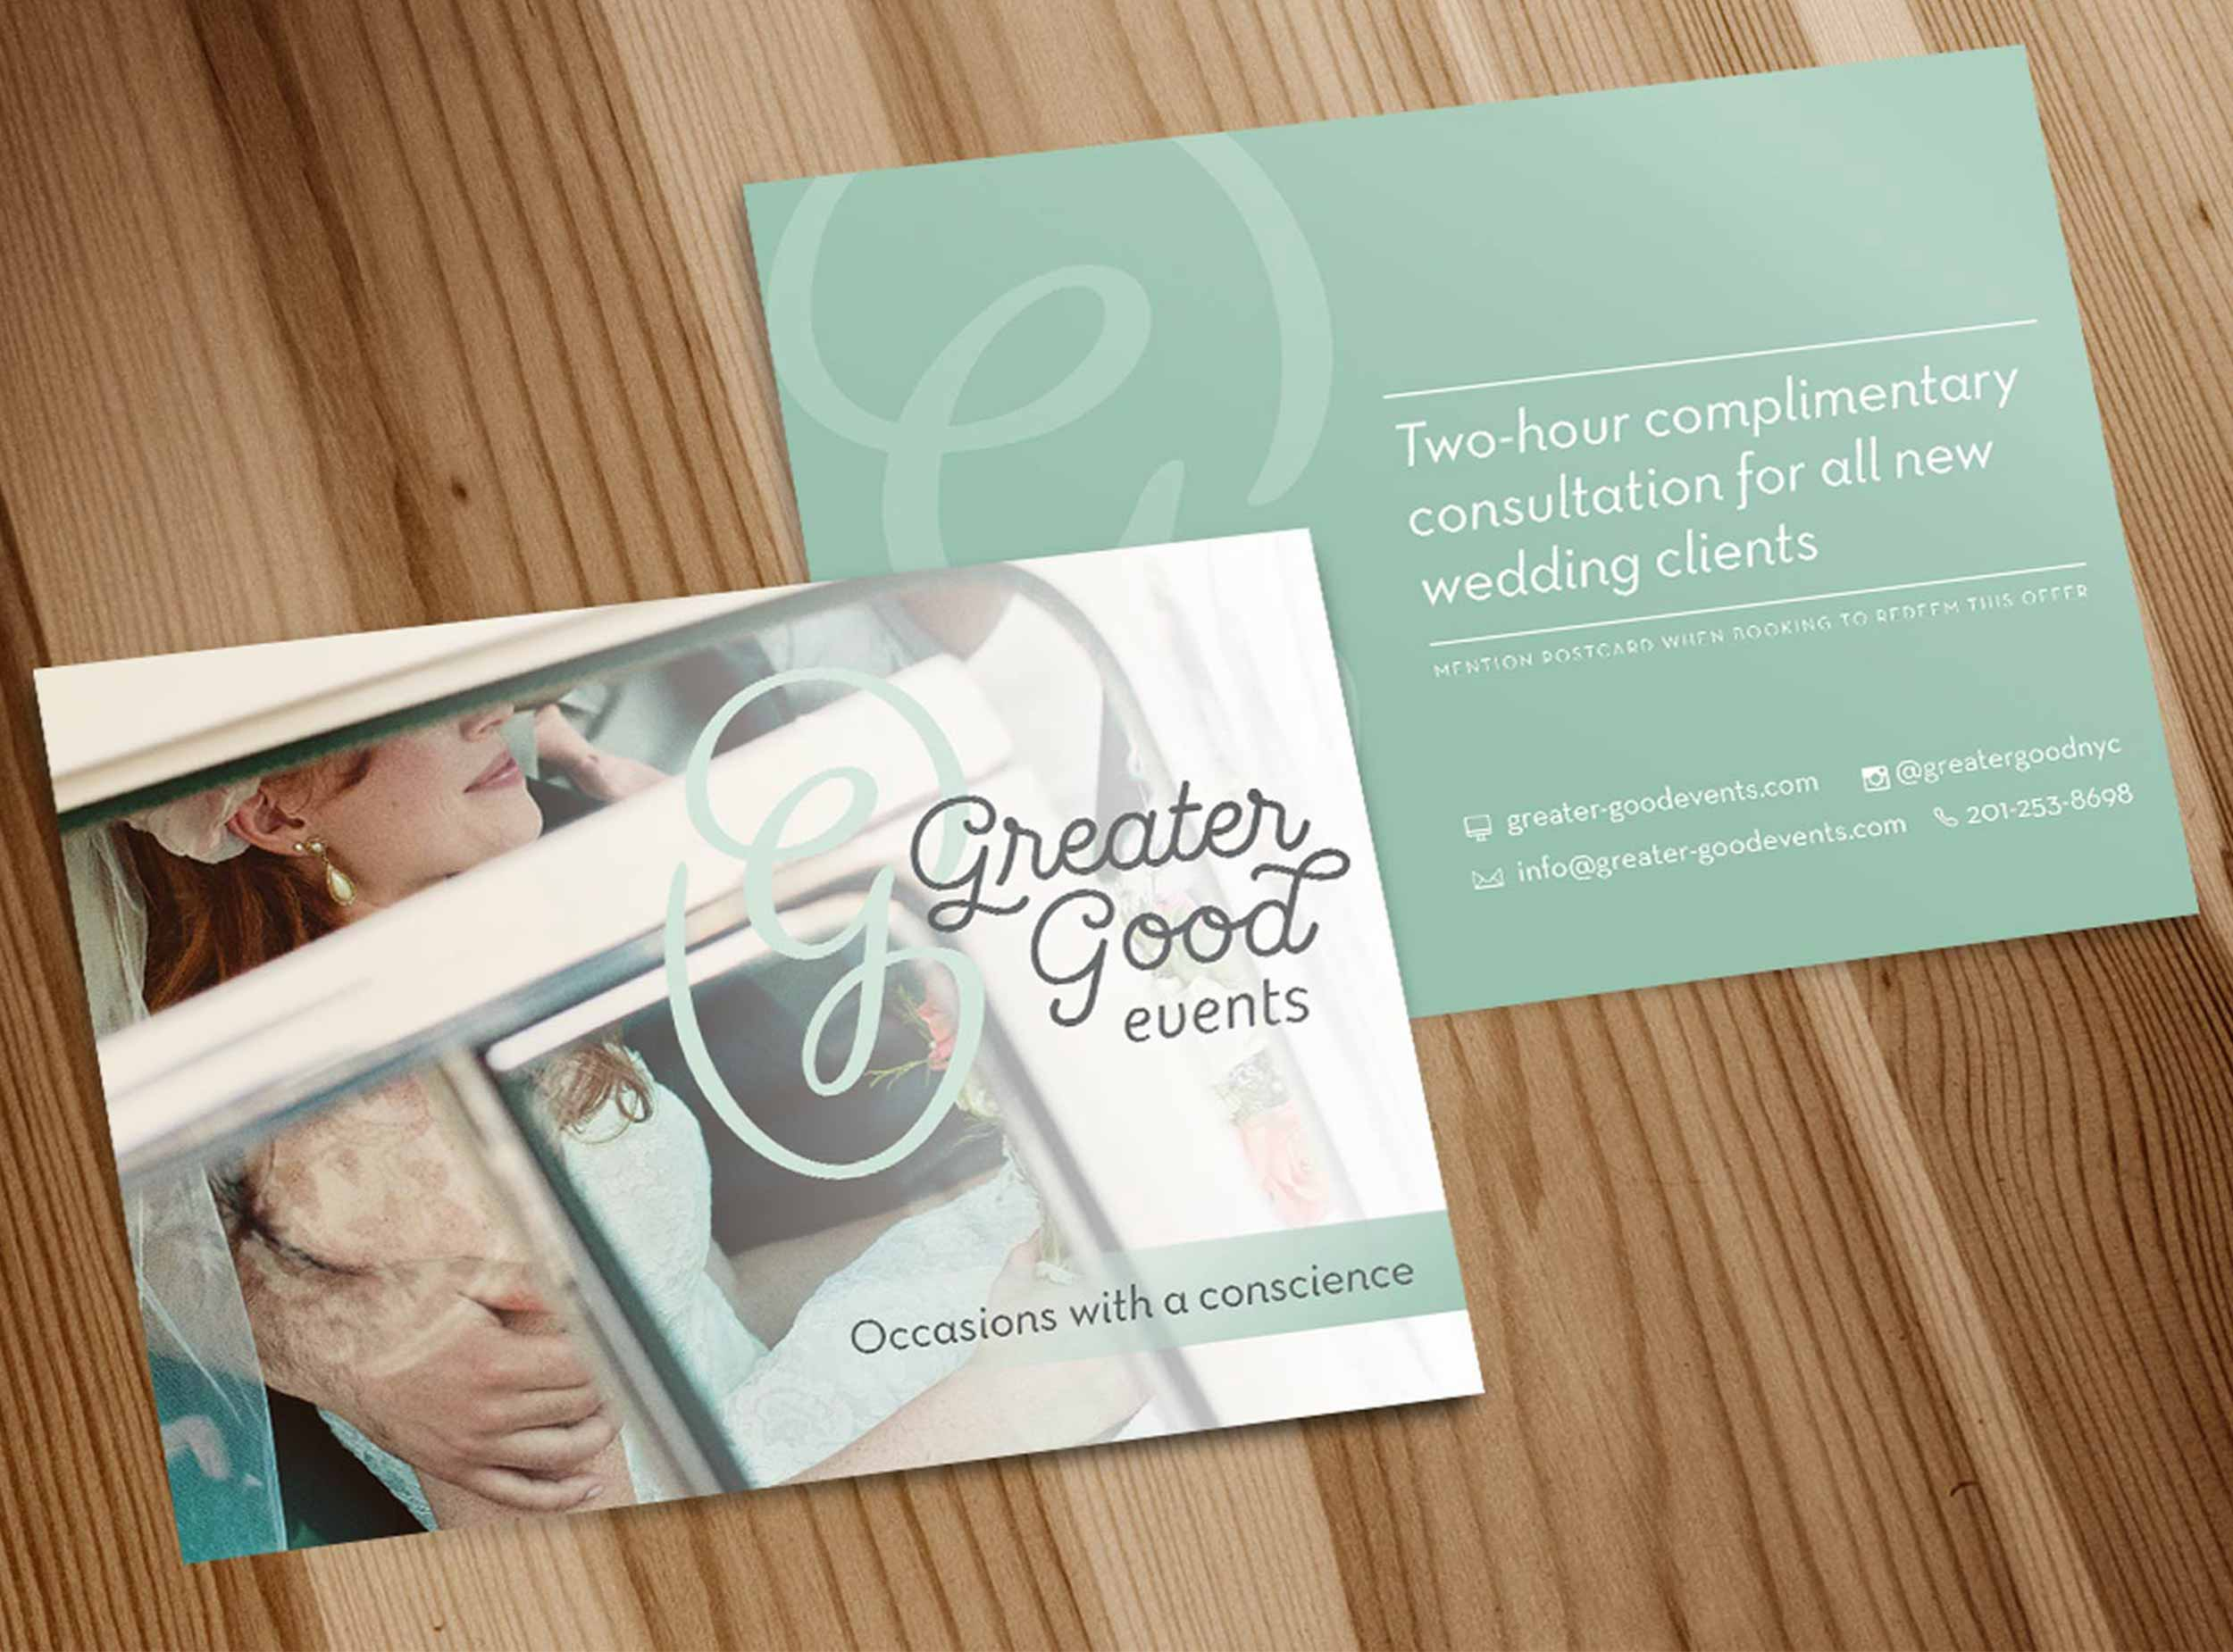 Greater Good Events' postcard design.